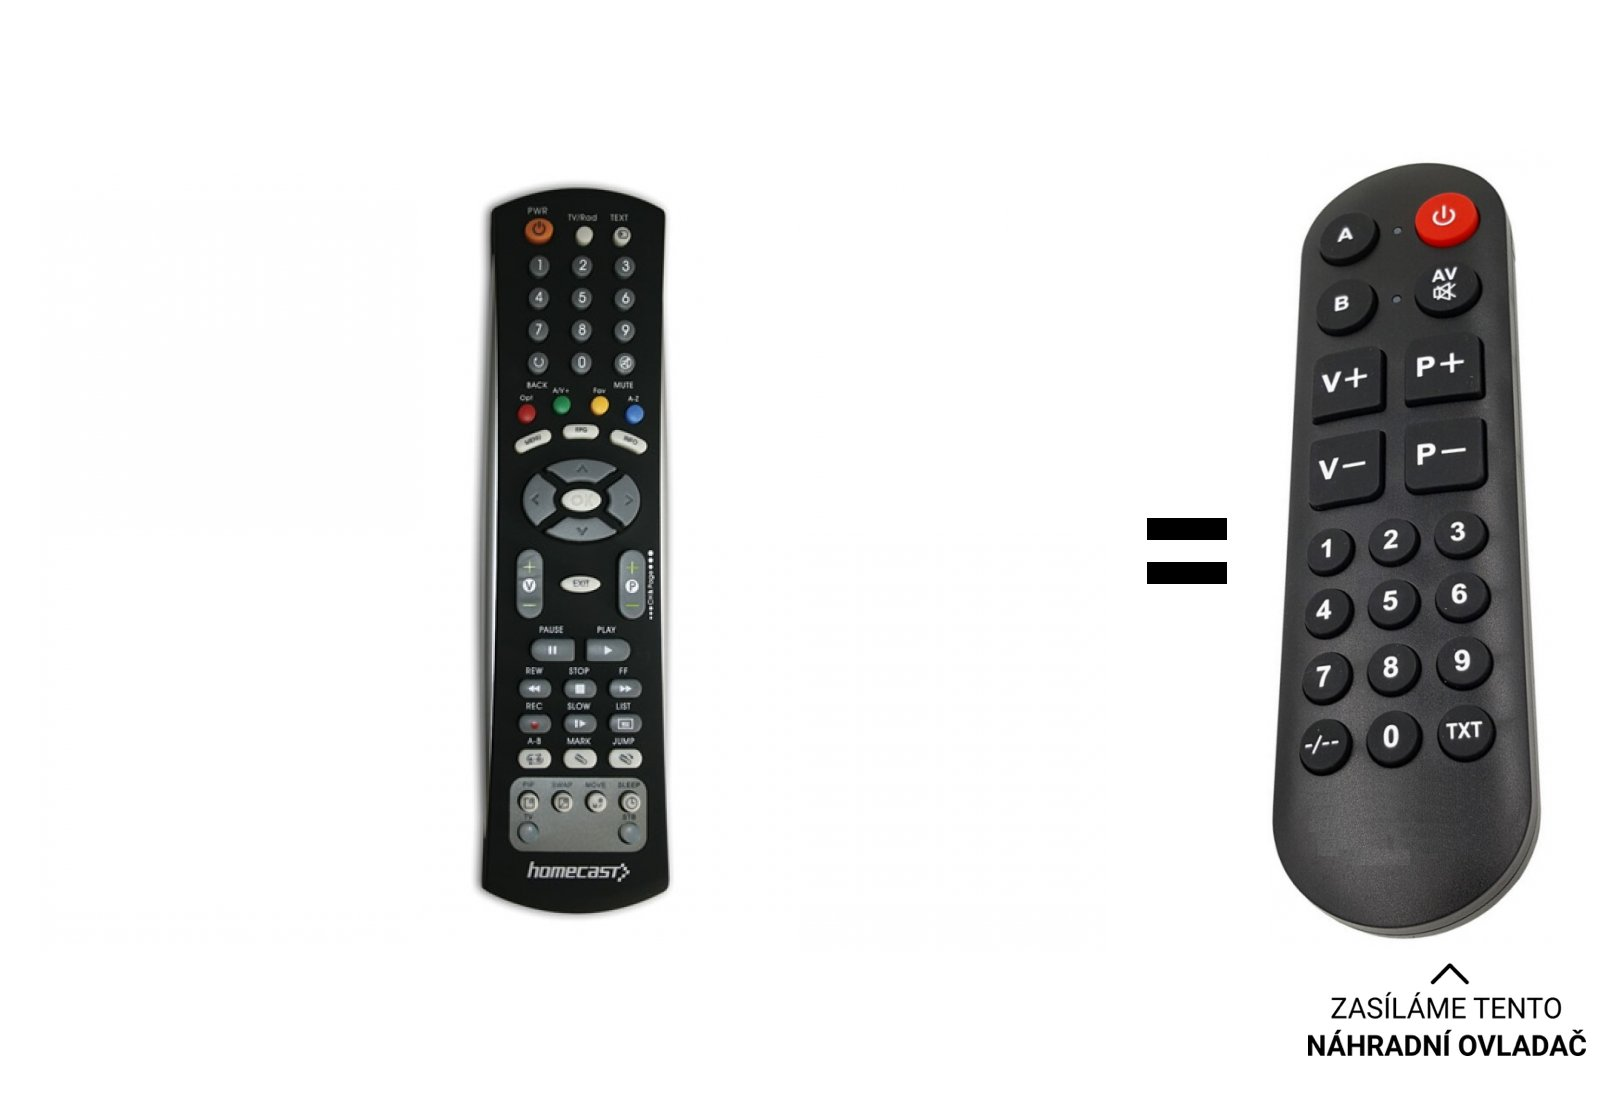 Homecast HS8100CIPVR, HT8000, HT8200 replacement remote control for seniors